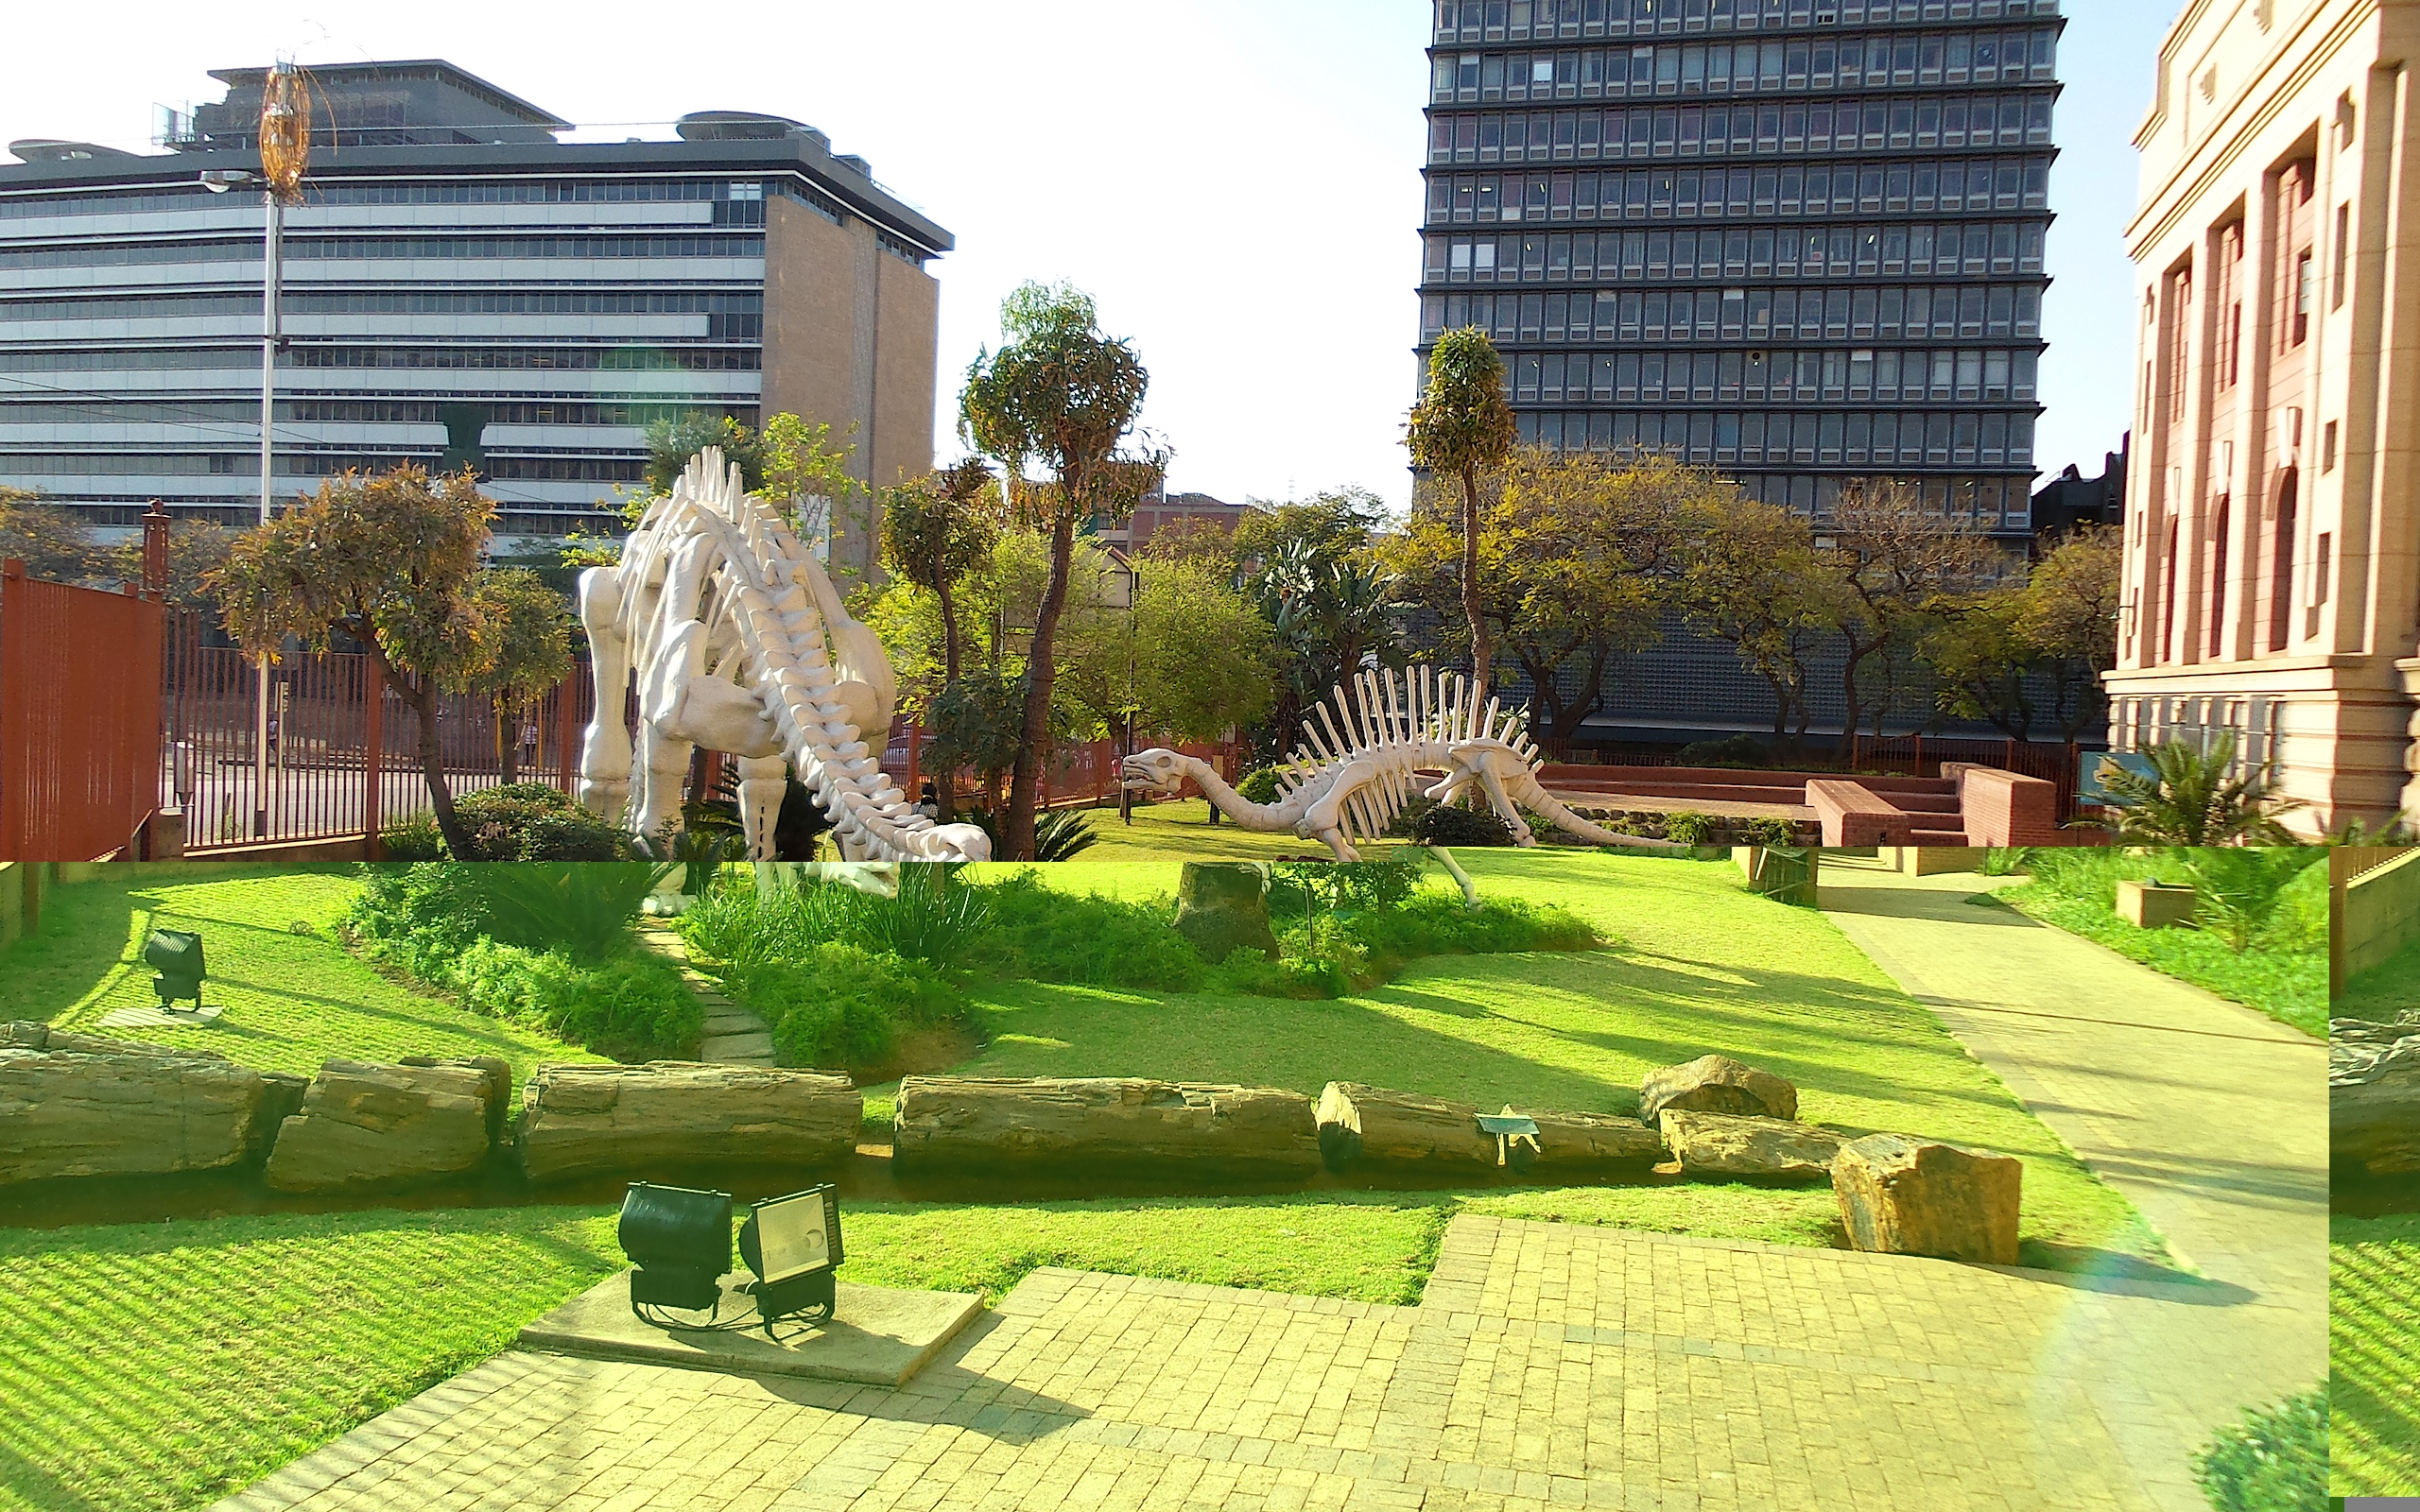 Sheraton Pretoria Hotel (South Africa) - Hotel Reviews - TripAdvisor